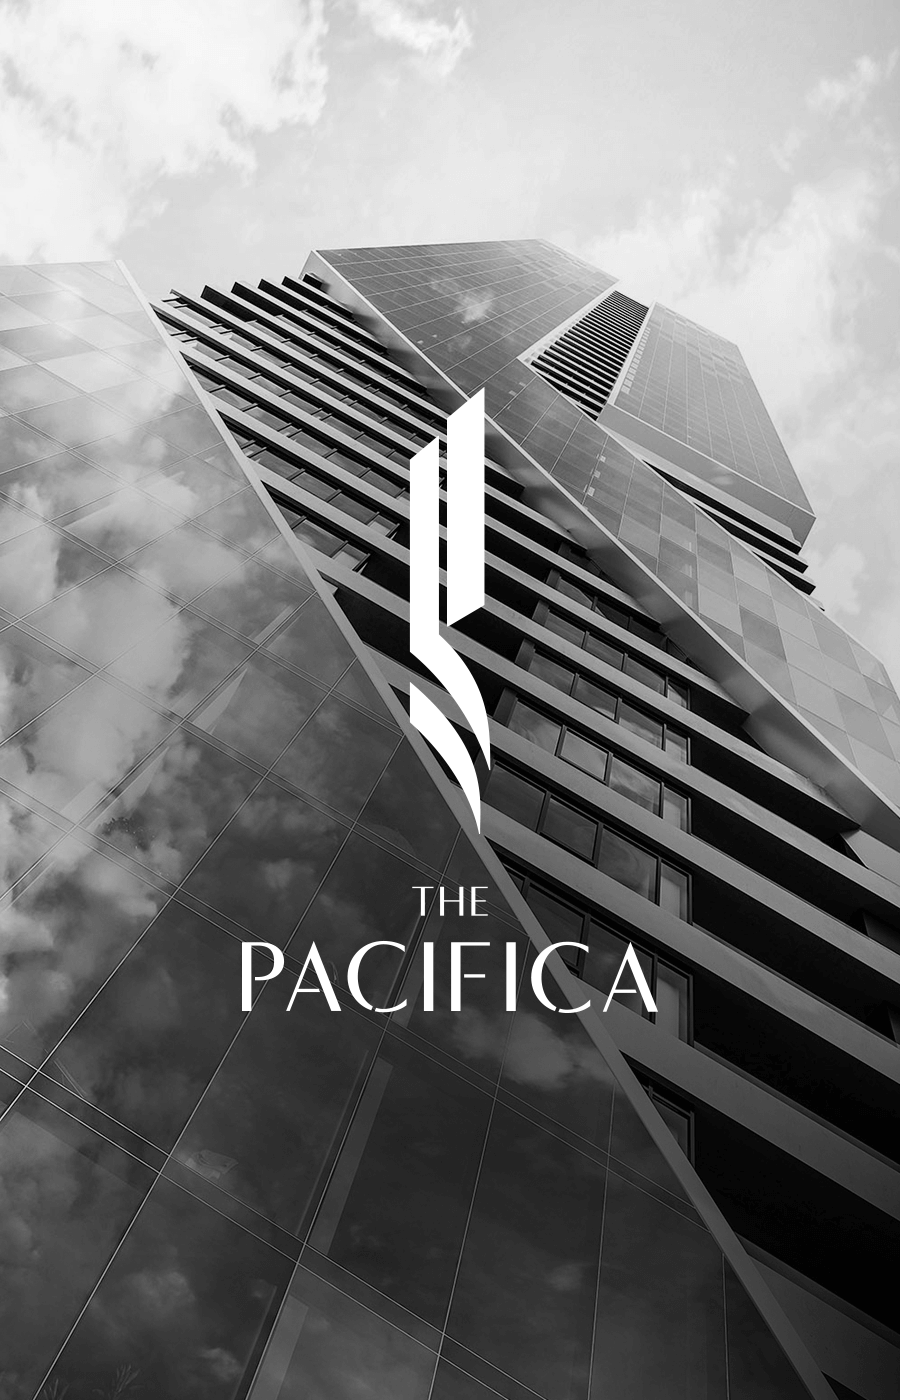 Branding New Zealand's tallest residential building